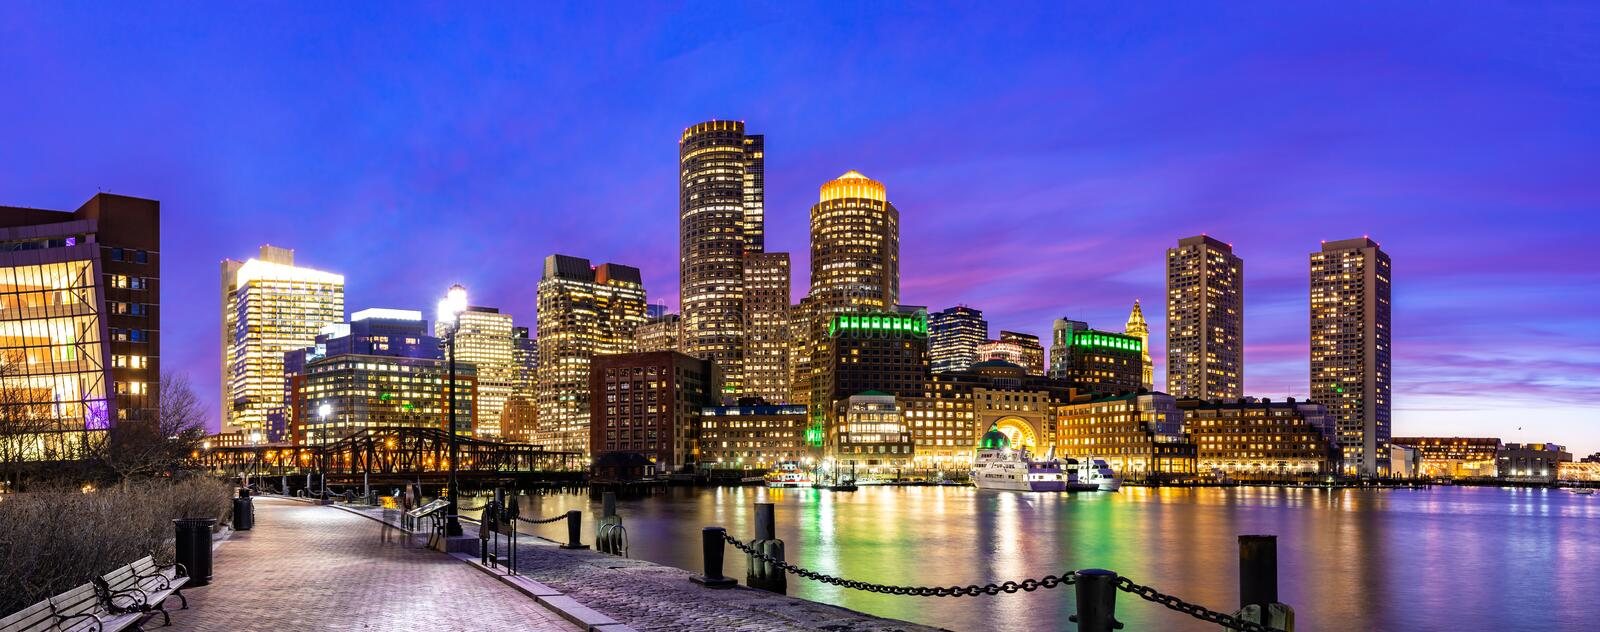 Boston Downtont night Panorama stock photography